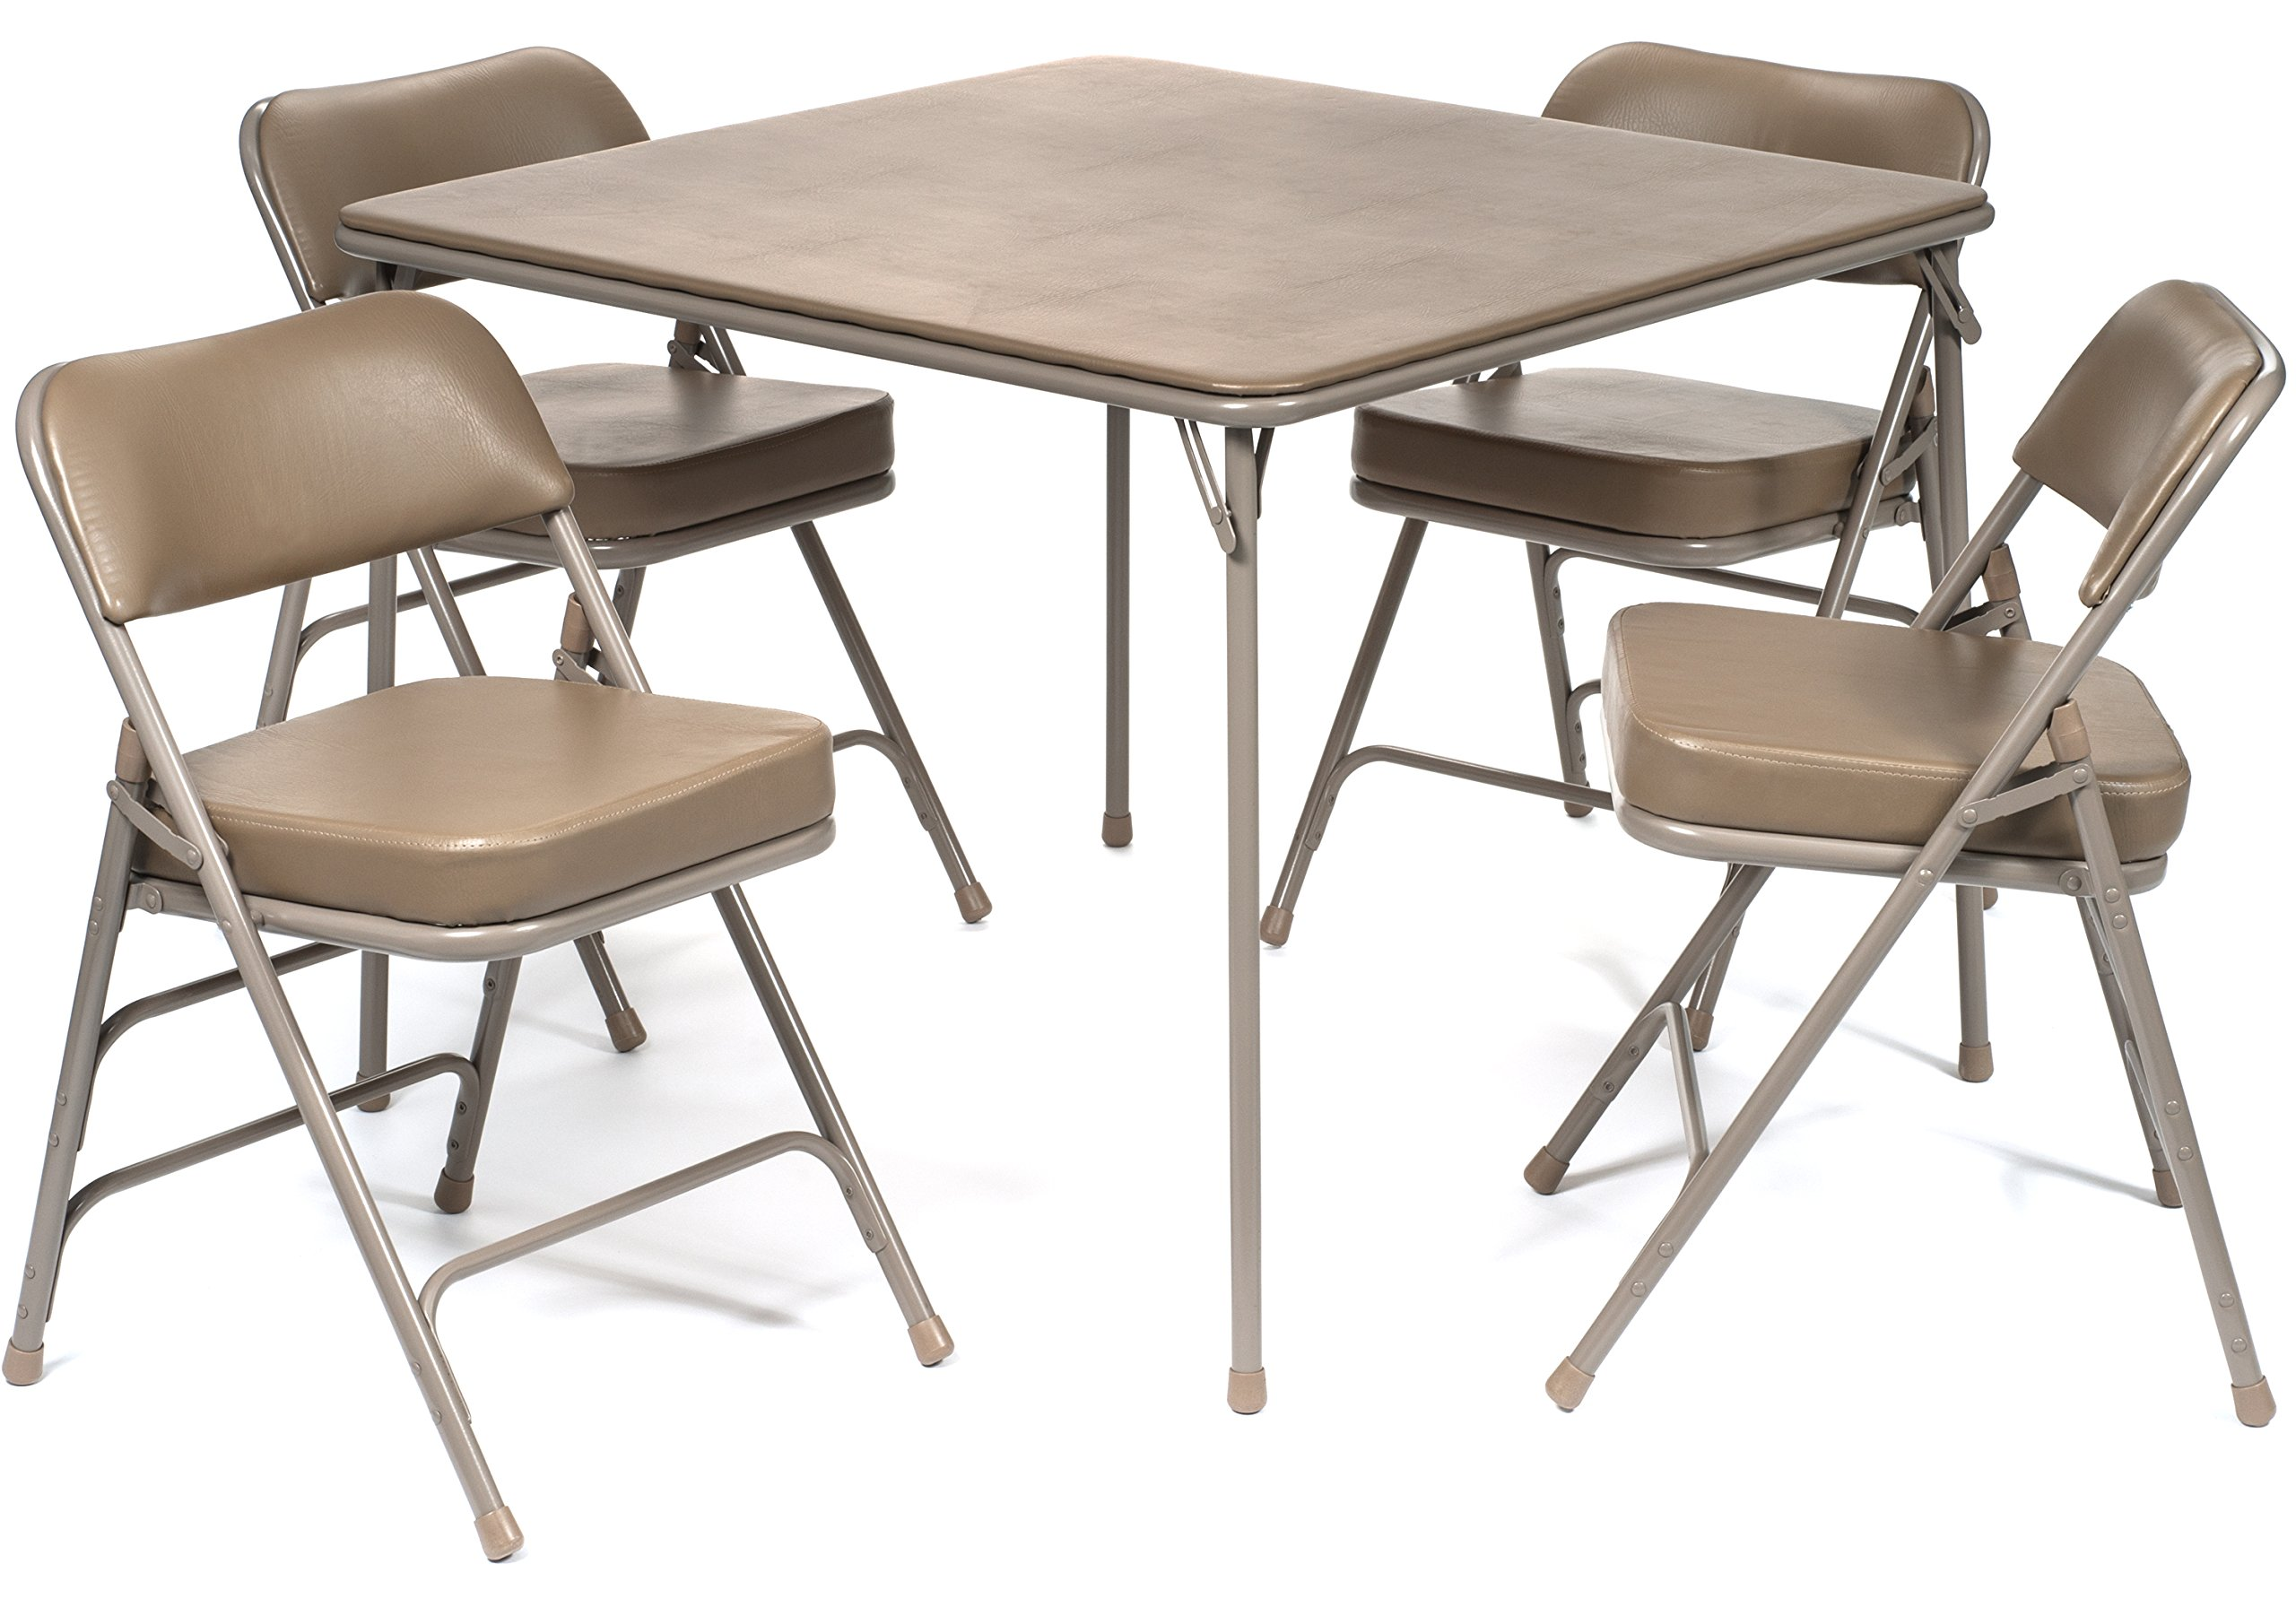 5pc. XL Series Folding Card Table and 2 in. Ultra Padded Chair Set, Commercial Quality, Beige by Folding Chairs and Tables